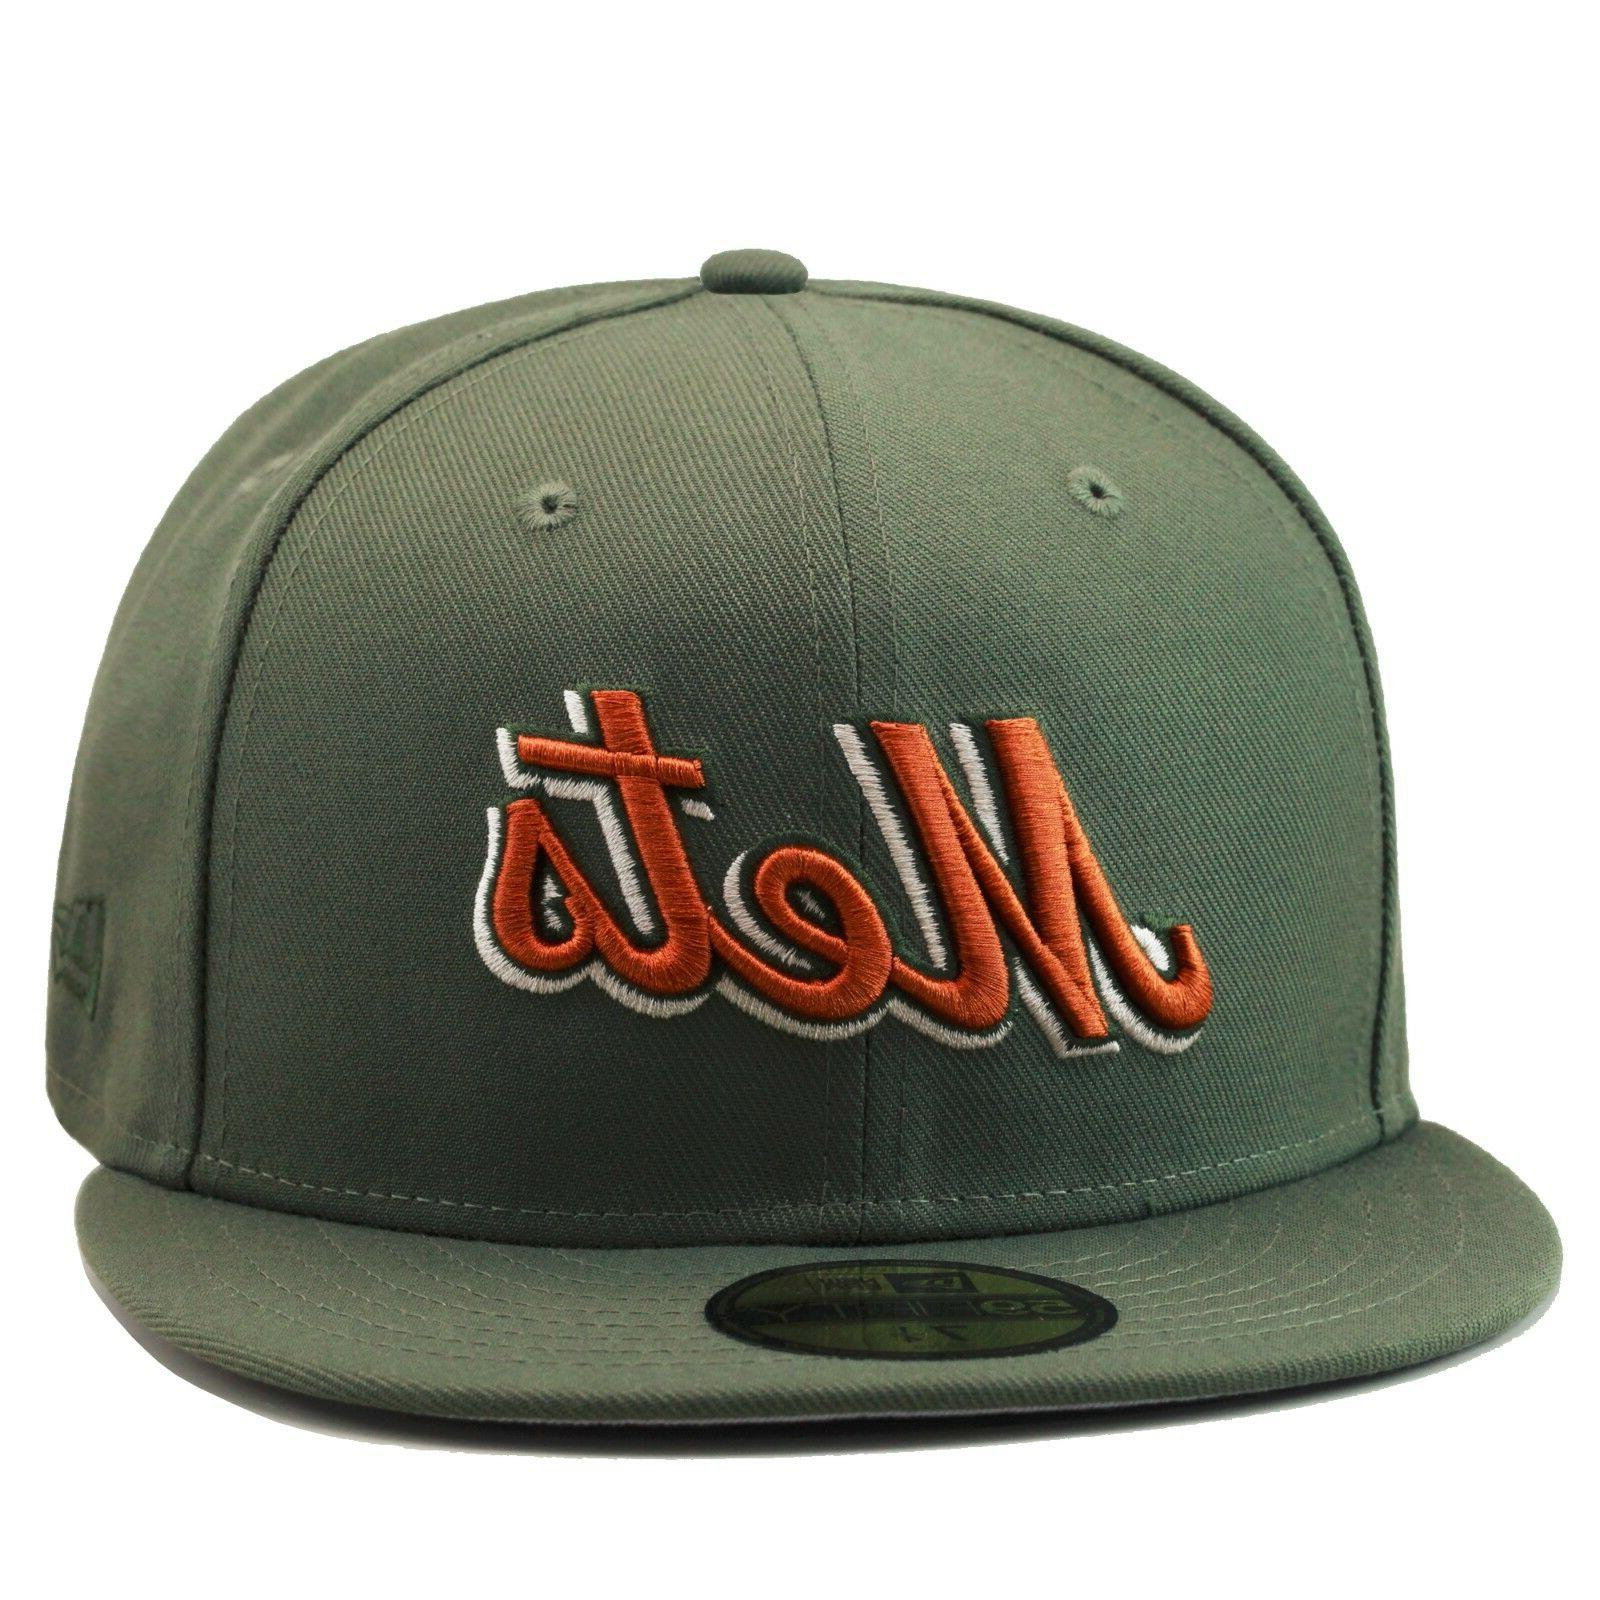 new york mets fitted hat olive green